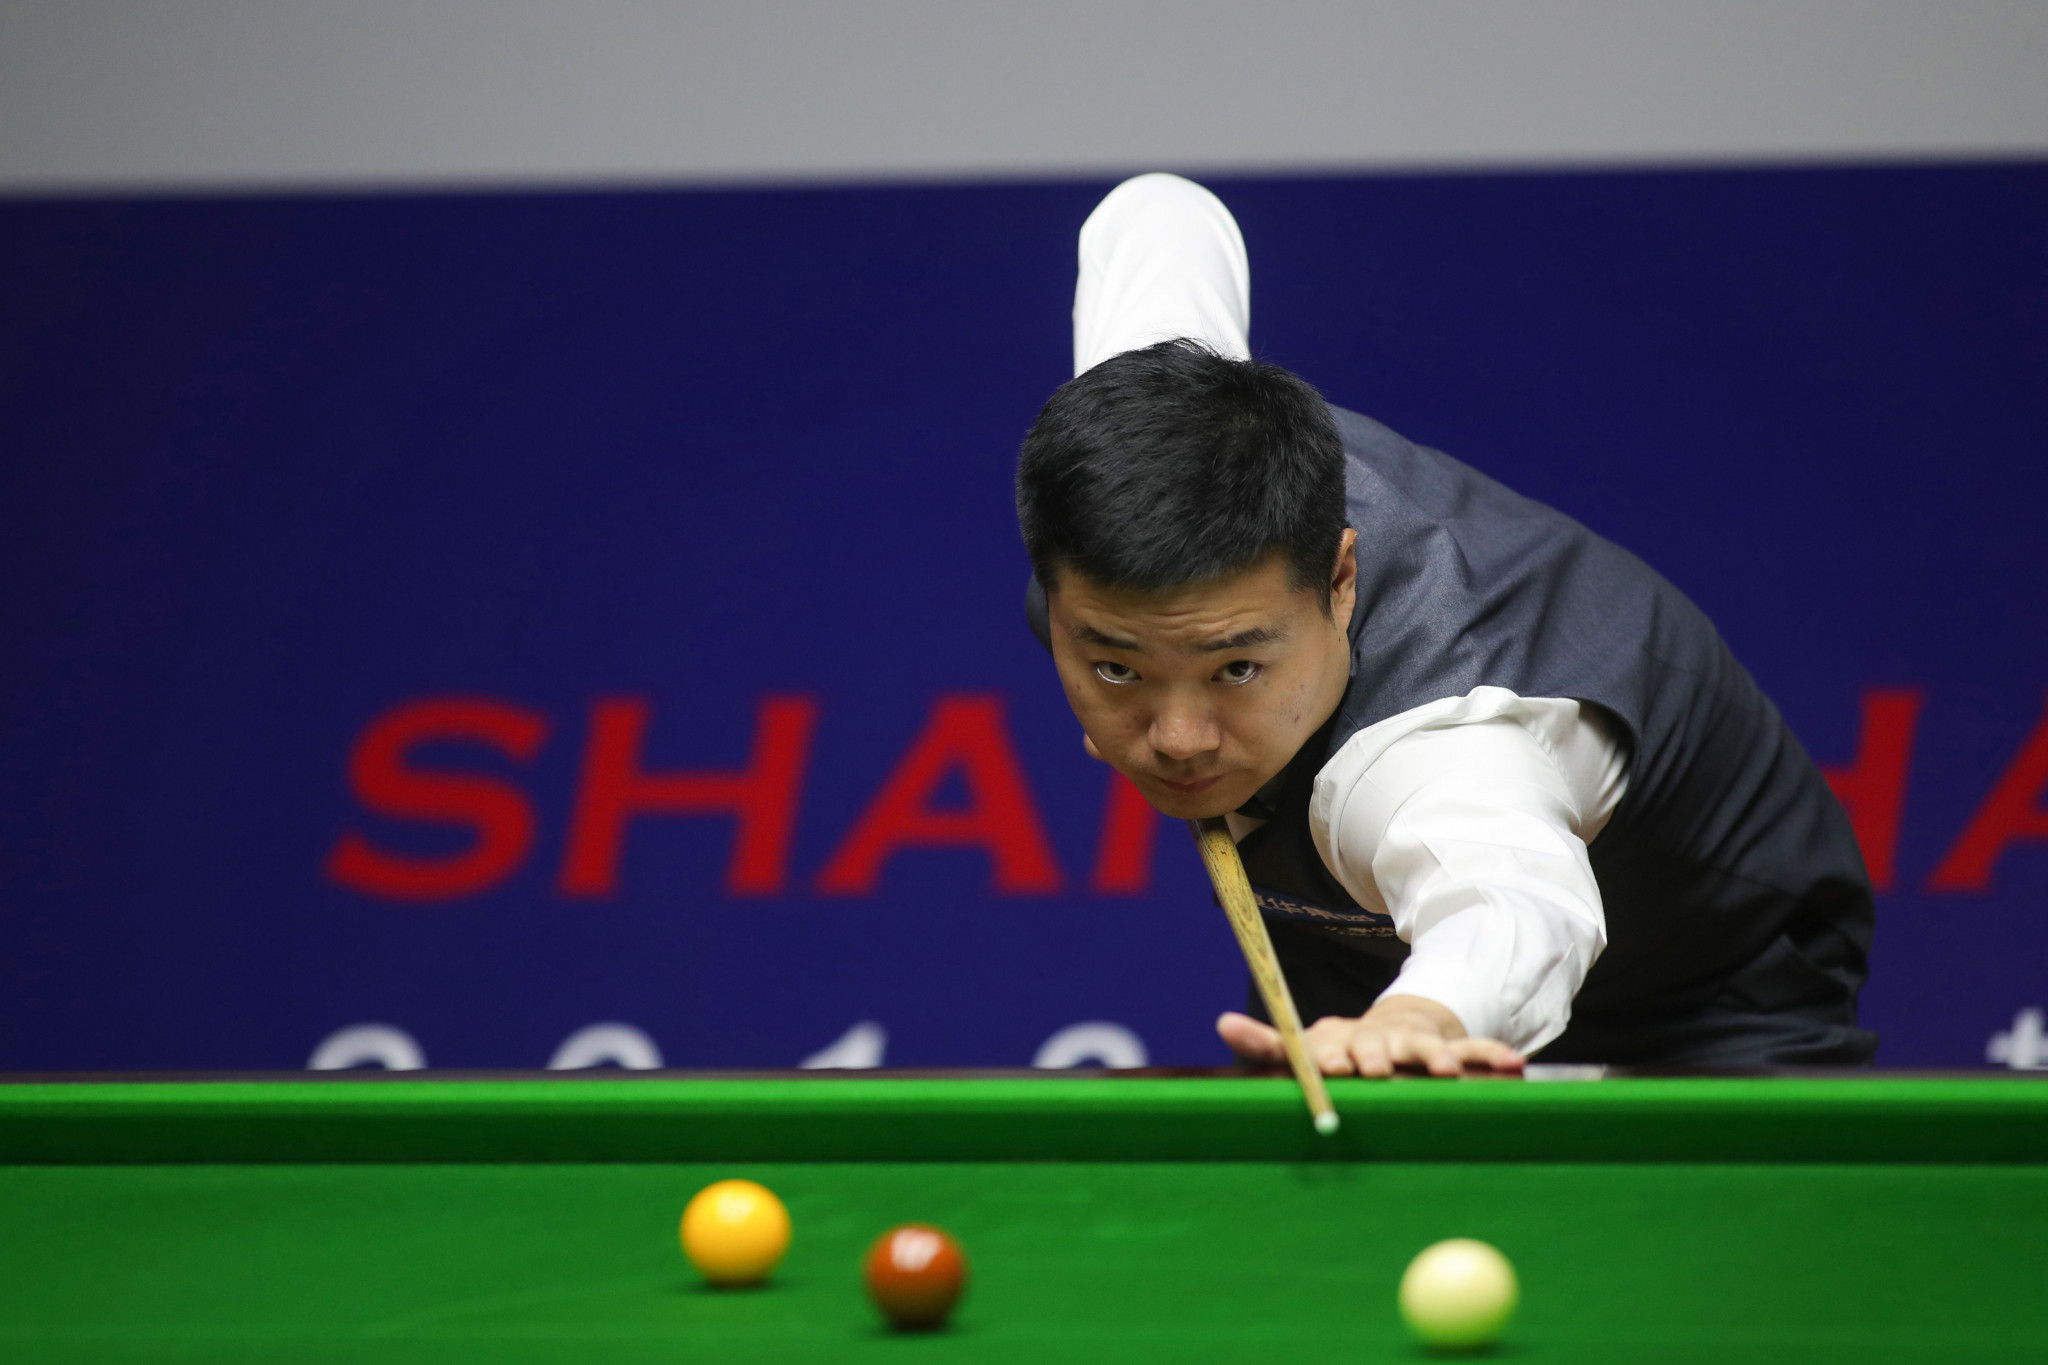 Snooker has become hugely popular in China, with 210 million fans tuning in to watch Ding Junhui lose the 2016 World Championship final ©Getty Images